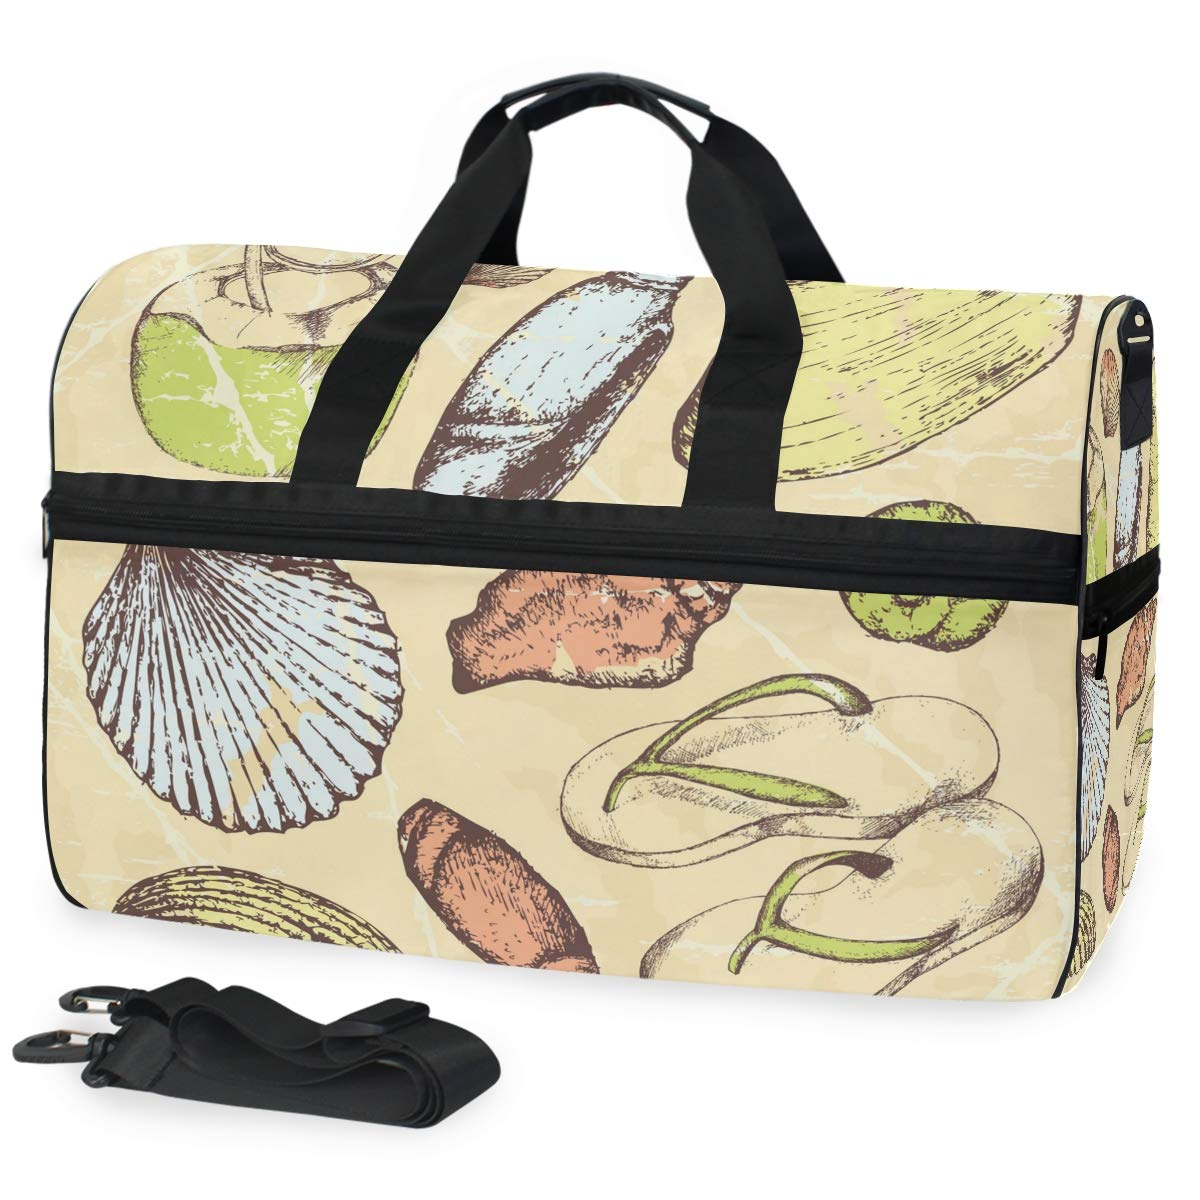 Vacation Gym Travel Duffel Bag Tropical Travel Set Waterproof Lightweight Luggage bag for Sports